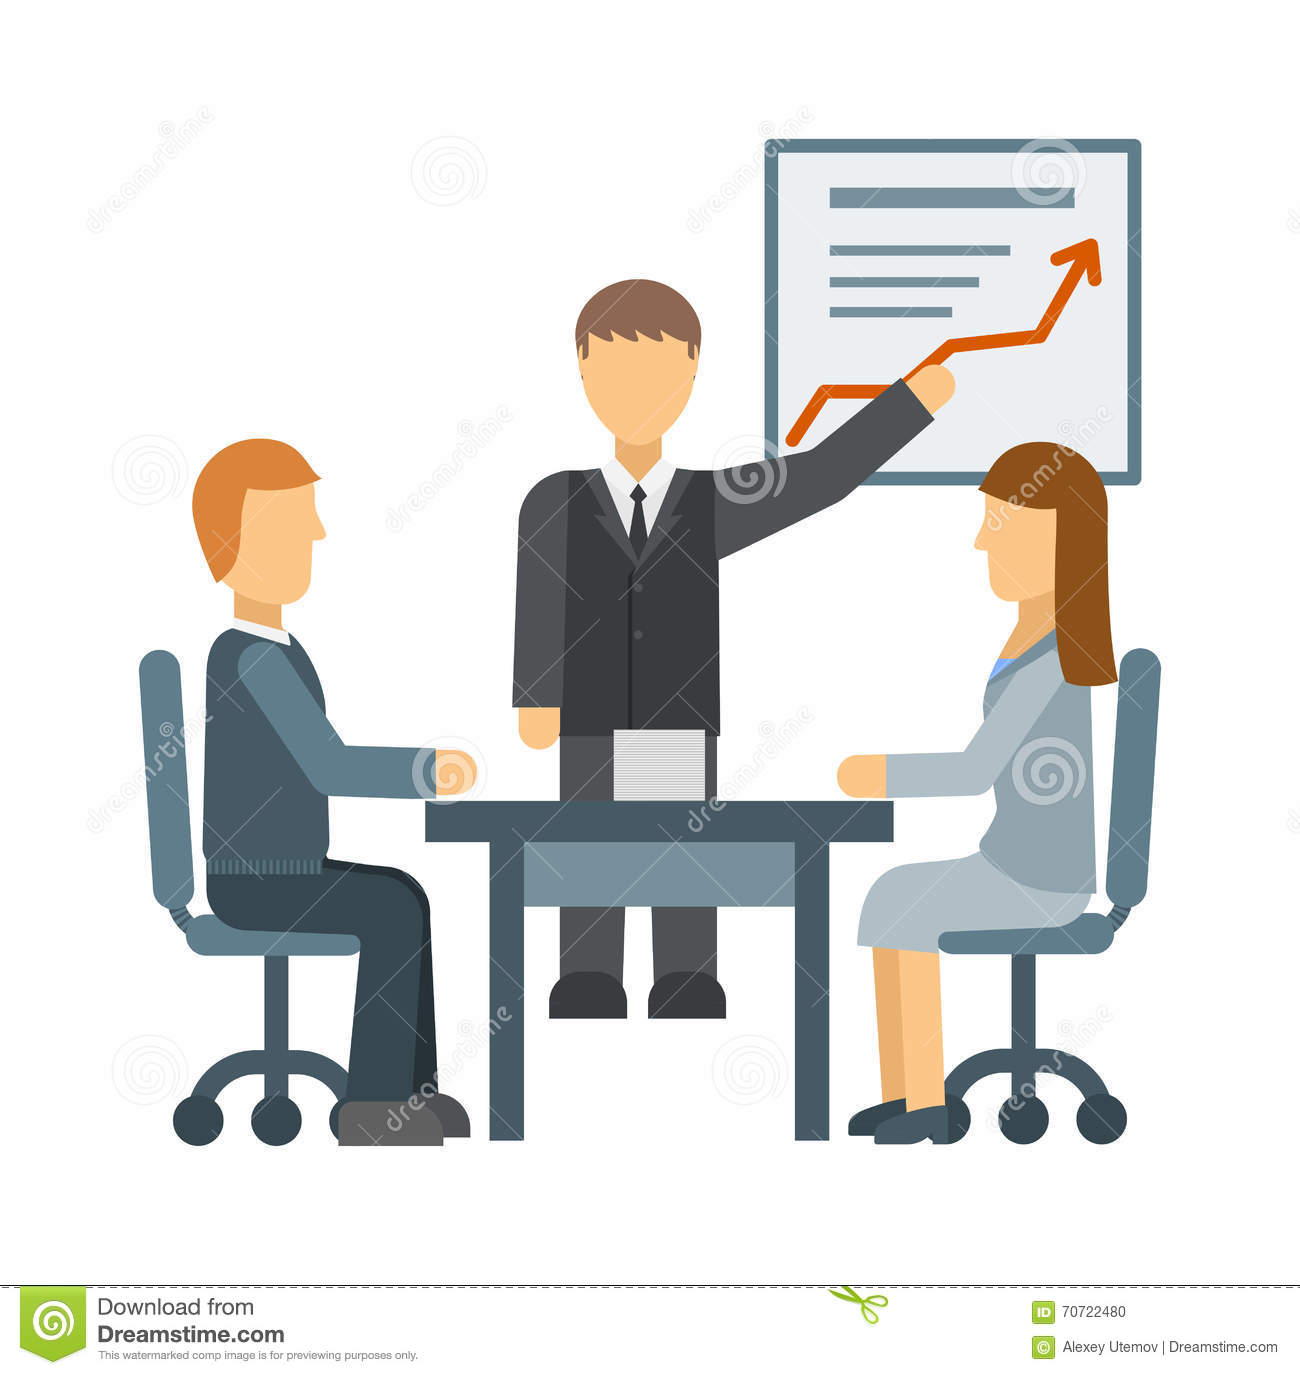 business-meeting-vector-illustration-diverse-teamwork-corporate-office-character-teamwork-corporate-office-70722480.jpg